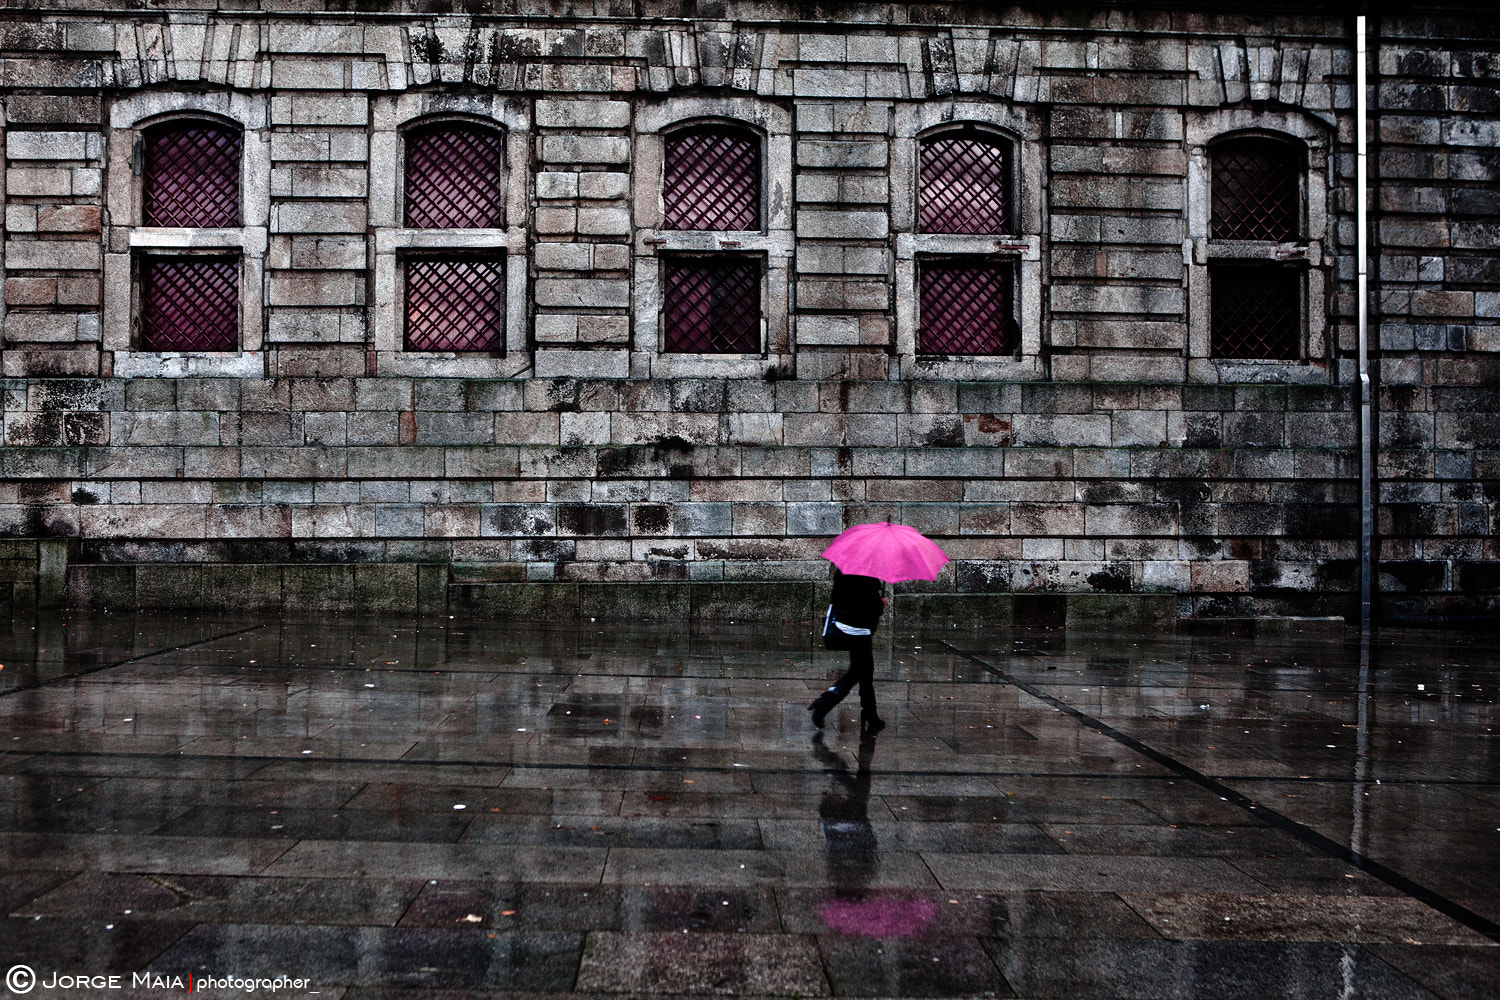 Photograph The pink umbrella by Jorge Maia on 500px